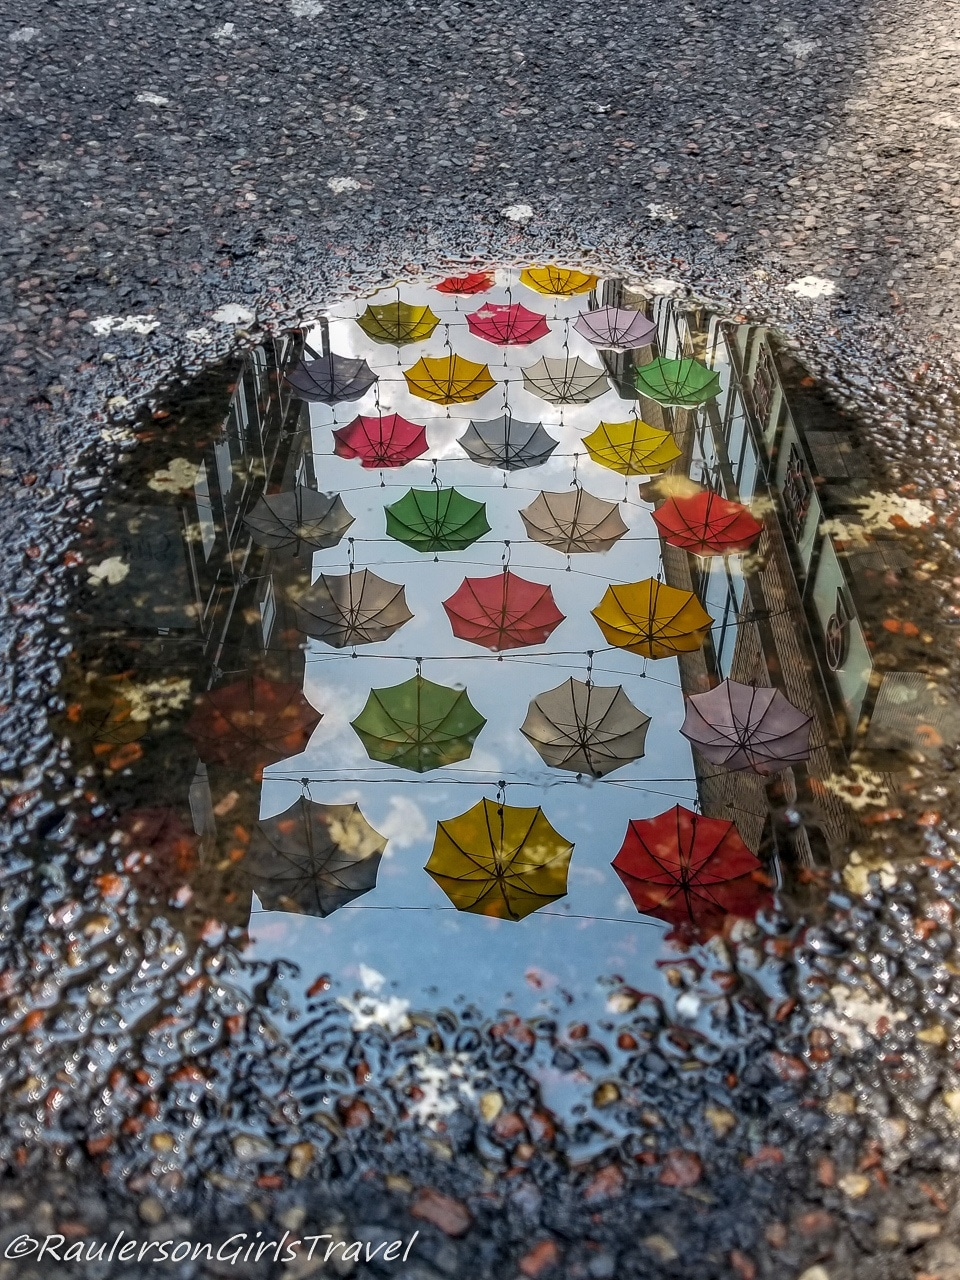 Colorful umbrella reflections in a puddle